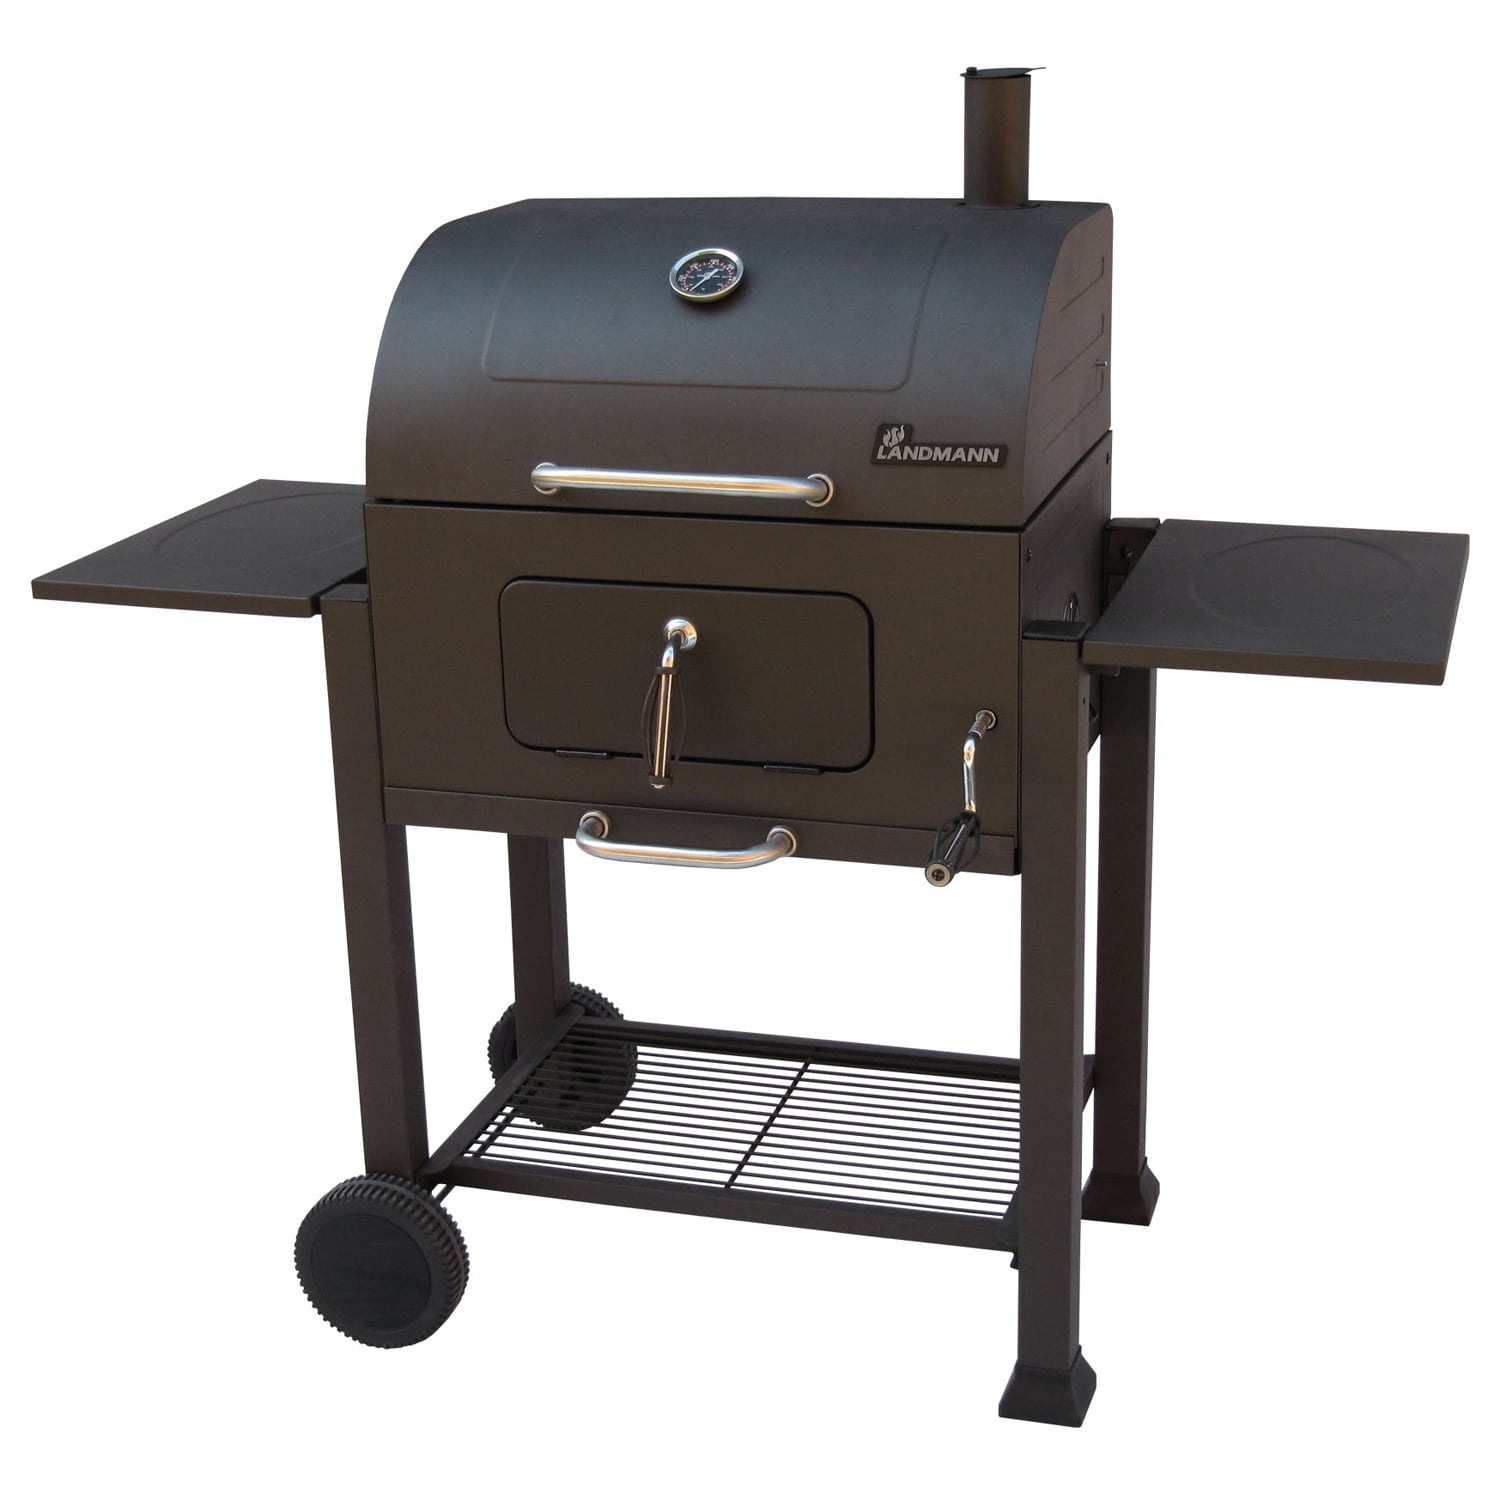 Landmann 'Vista' Barbecue Grill at Sears.com